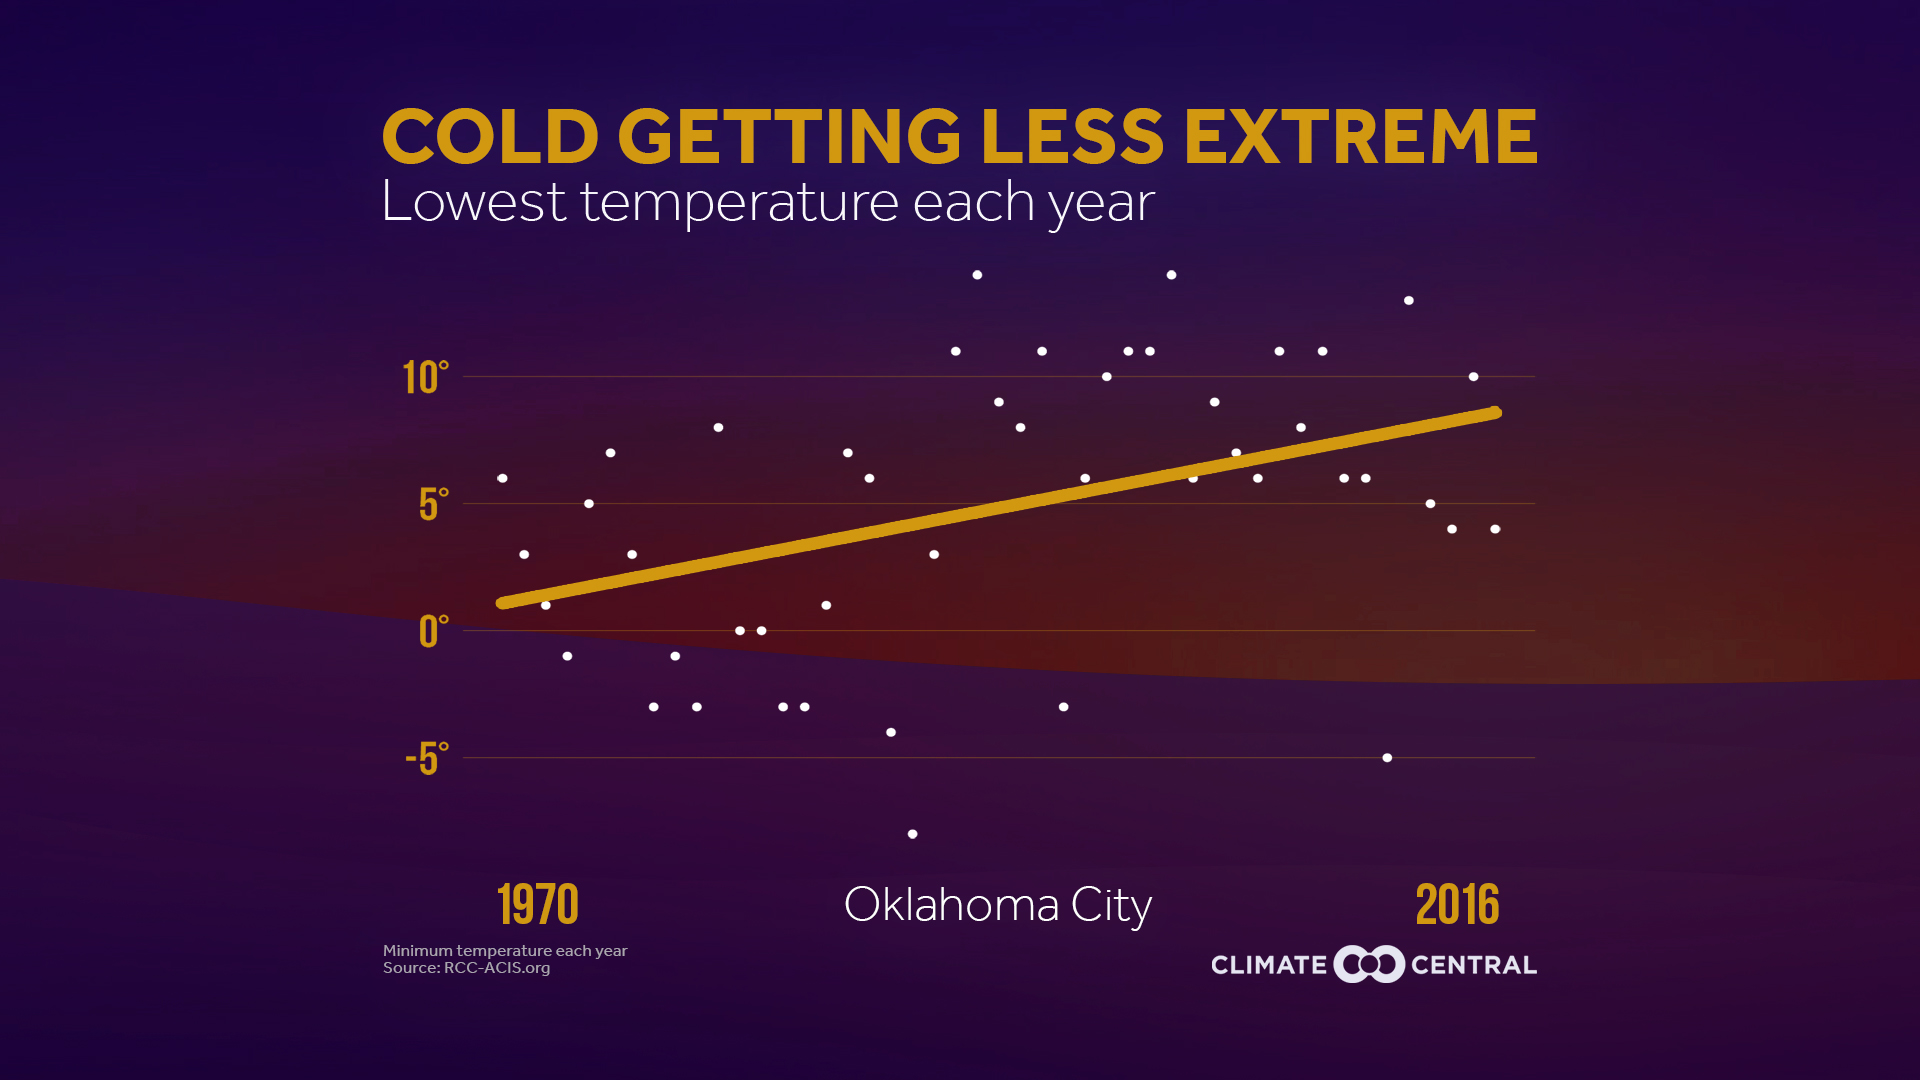 cold getting less extreme